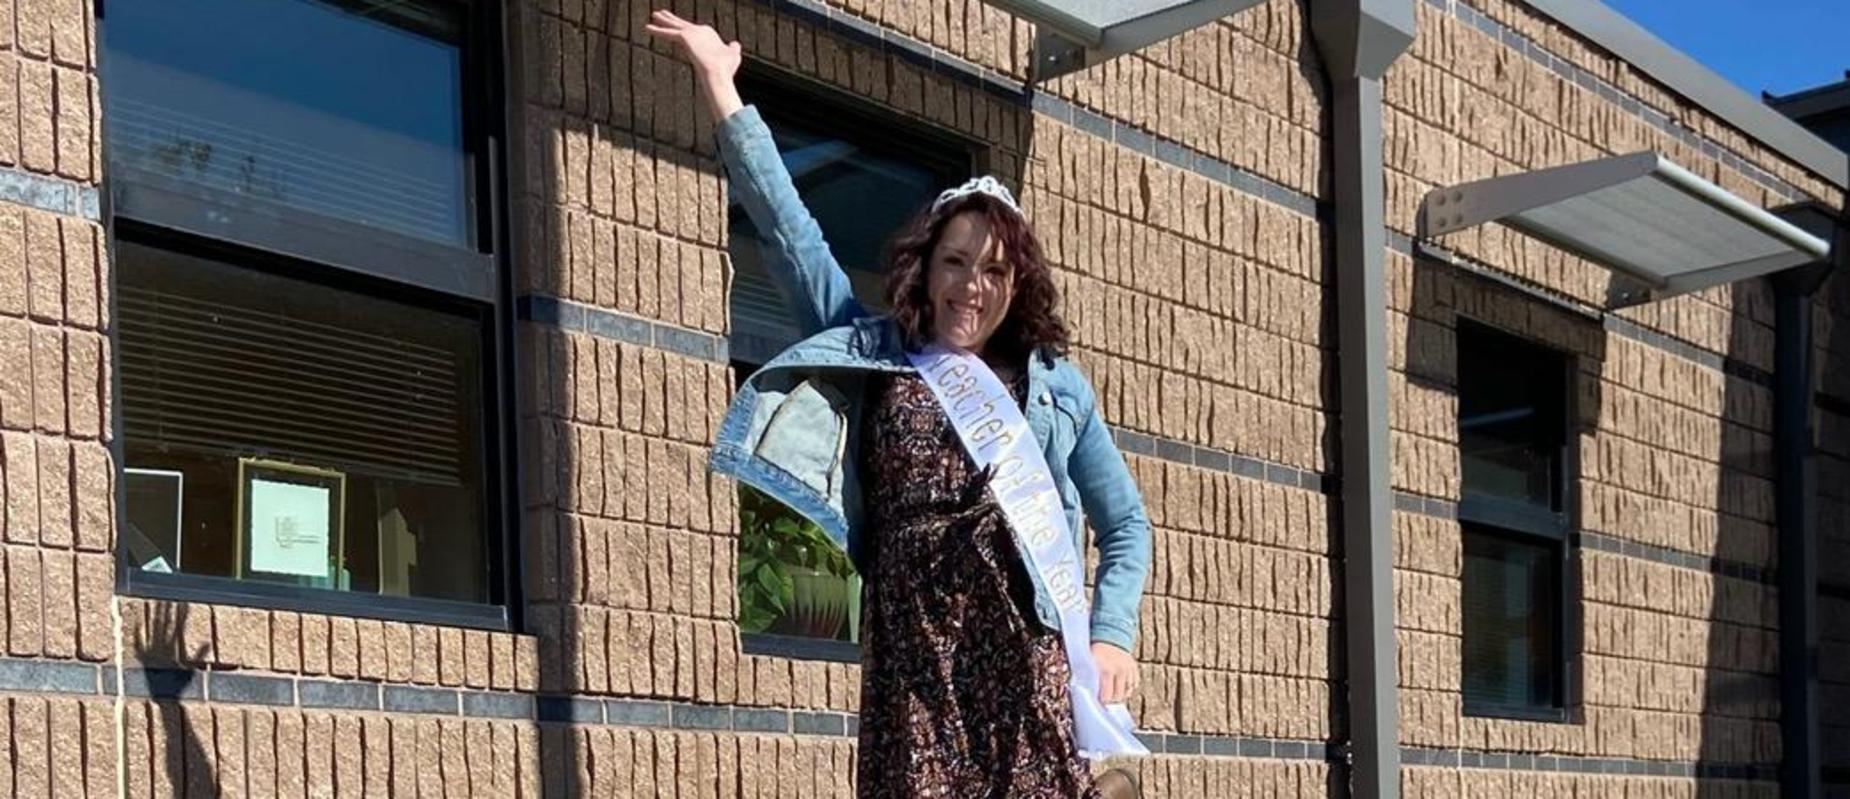 Teacher jumping in the air with a crown on